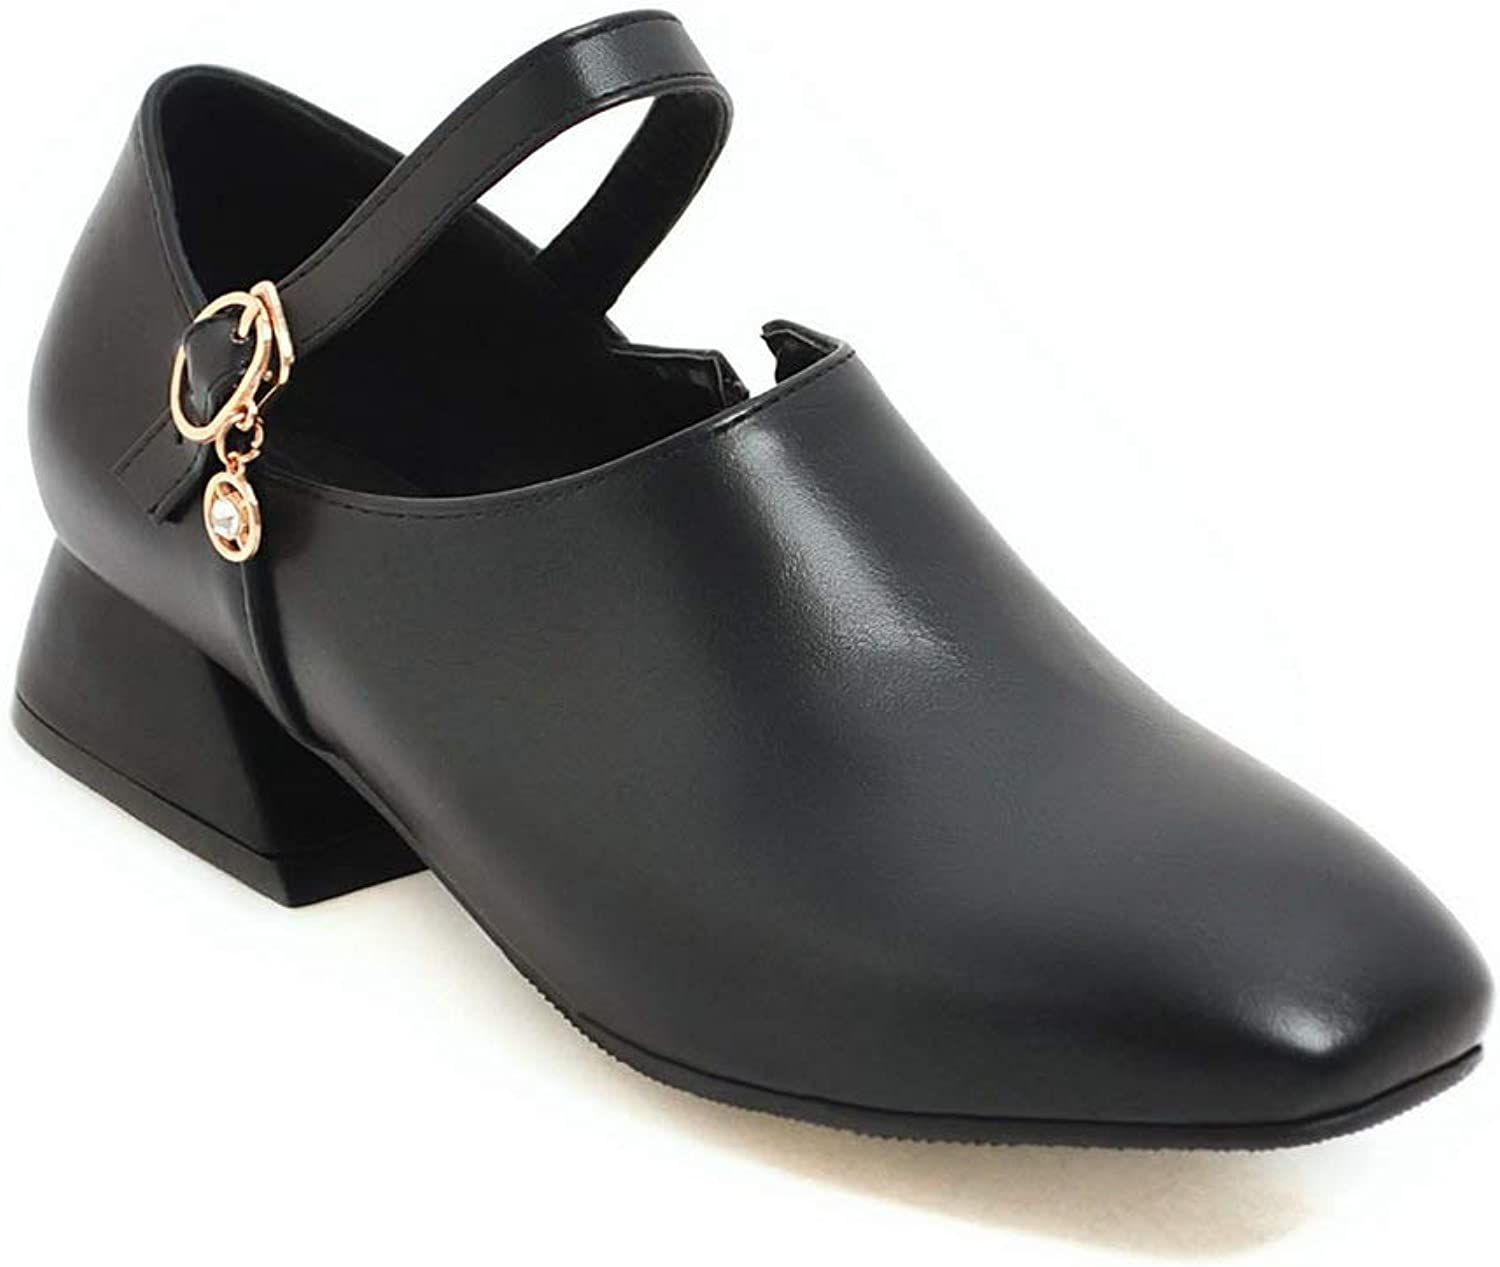 AdeeSu Womens Travel Solid Pumps-shoes Leather Pumps shoes SDC06351